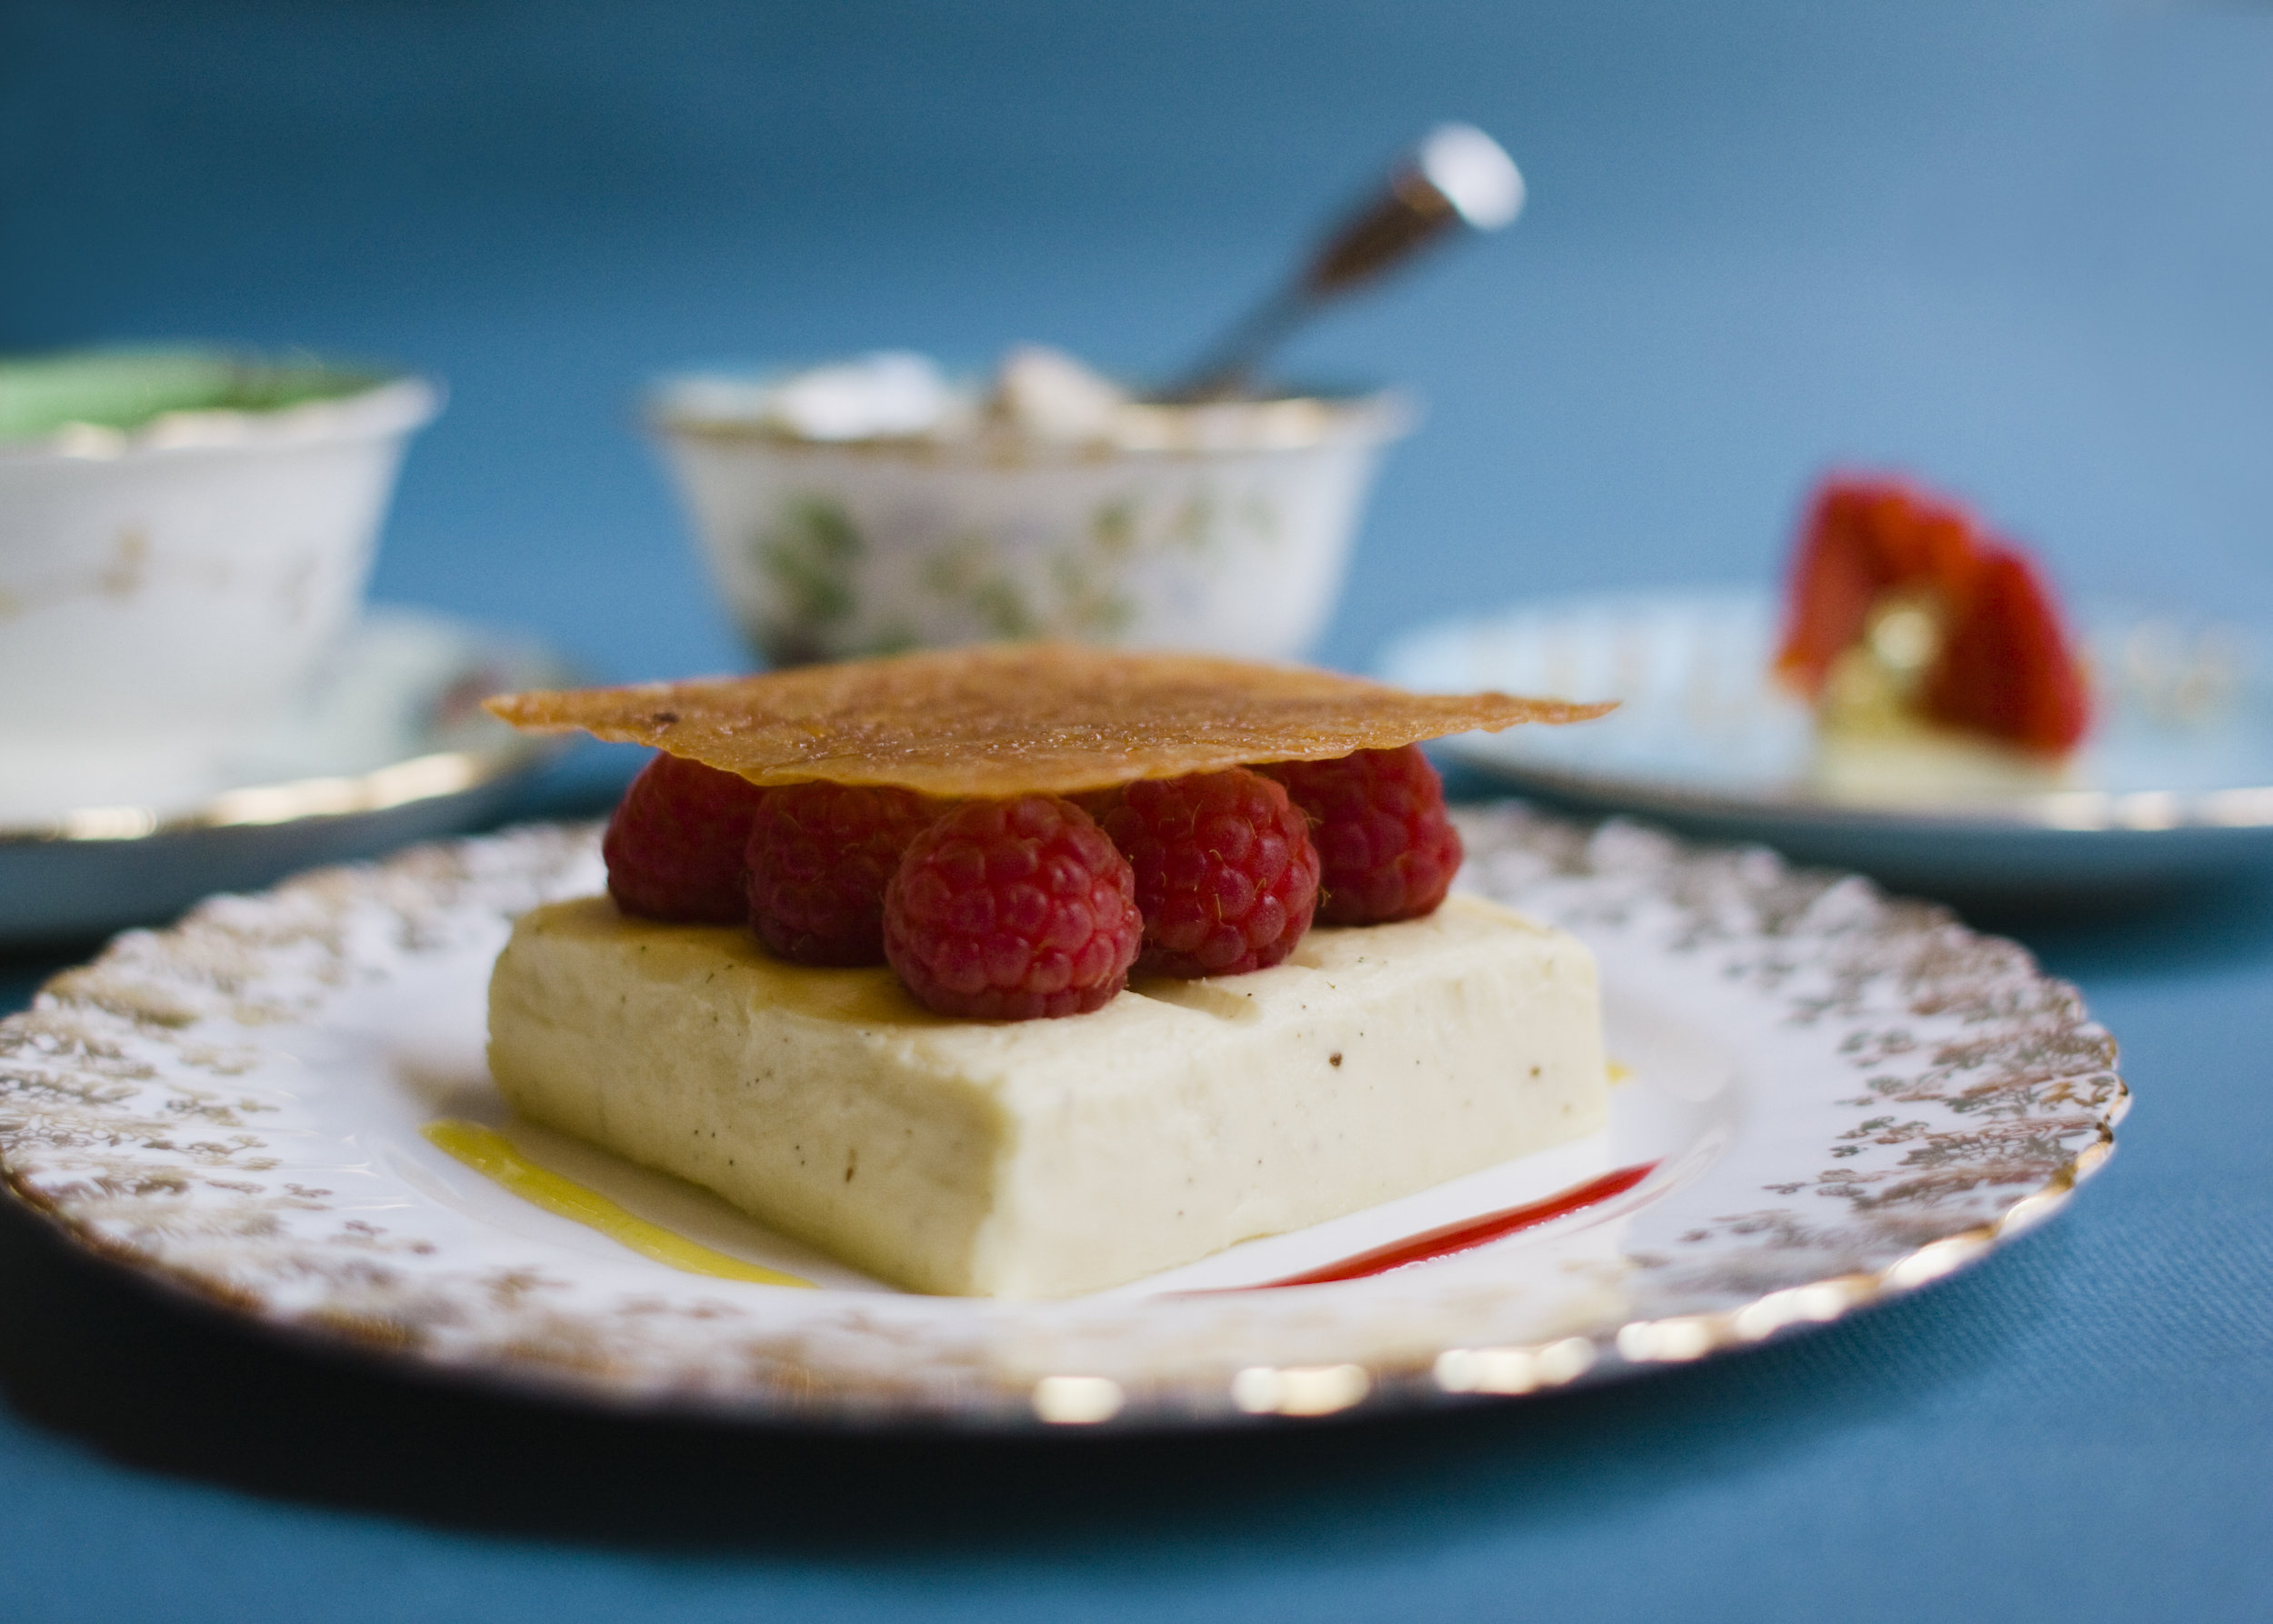 Afternoon Tea Treats - Private Party Catering